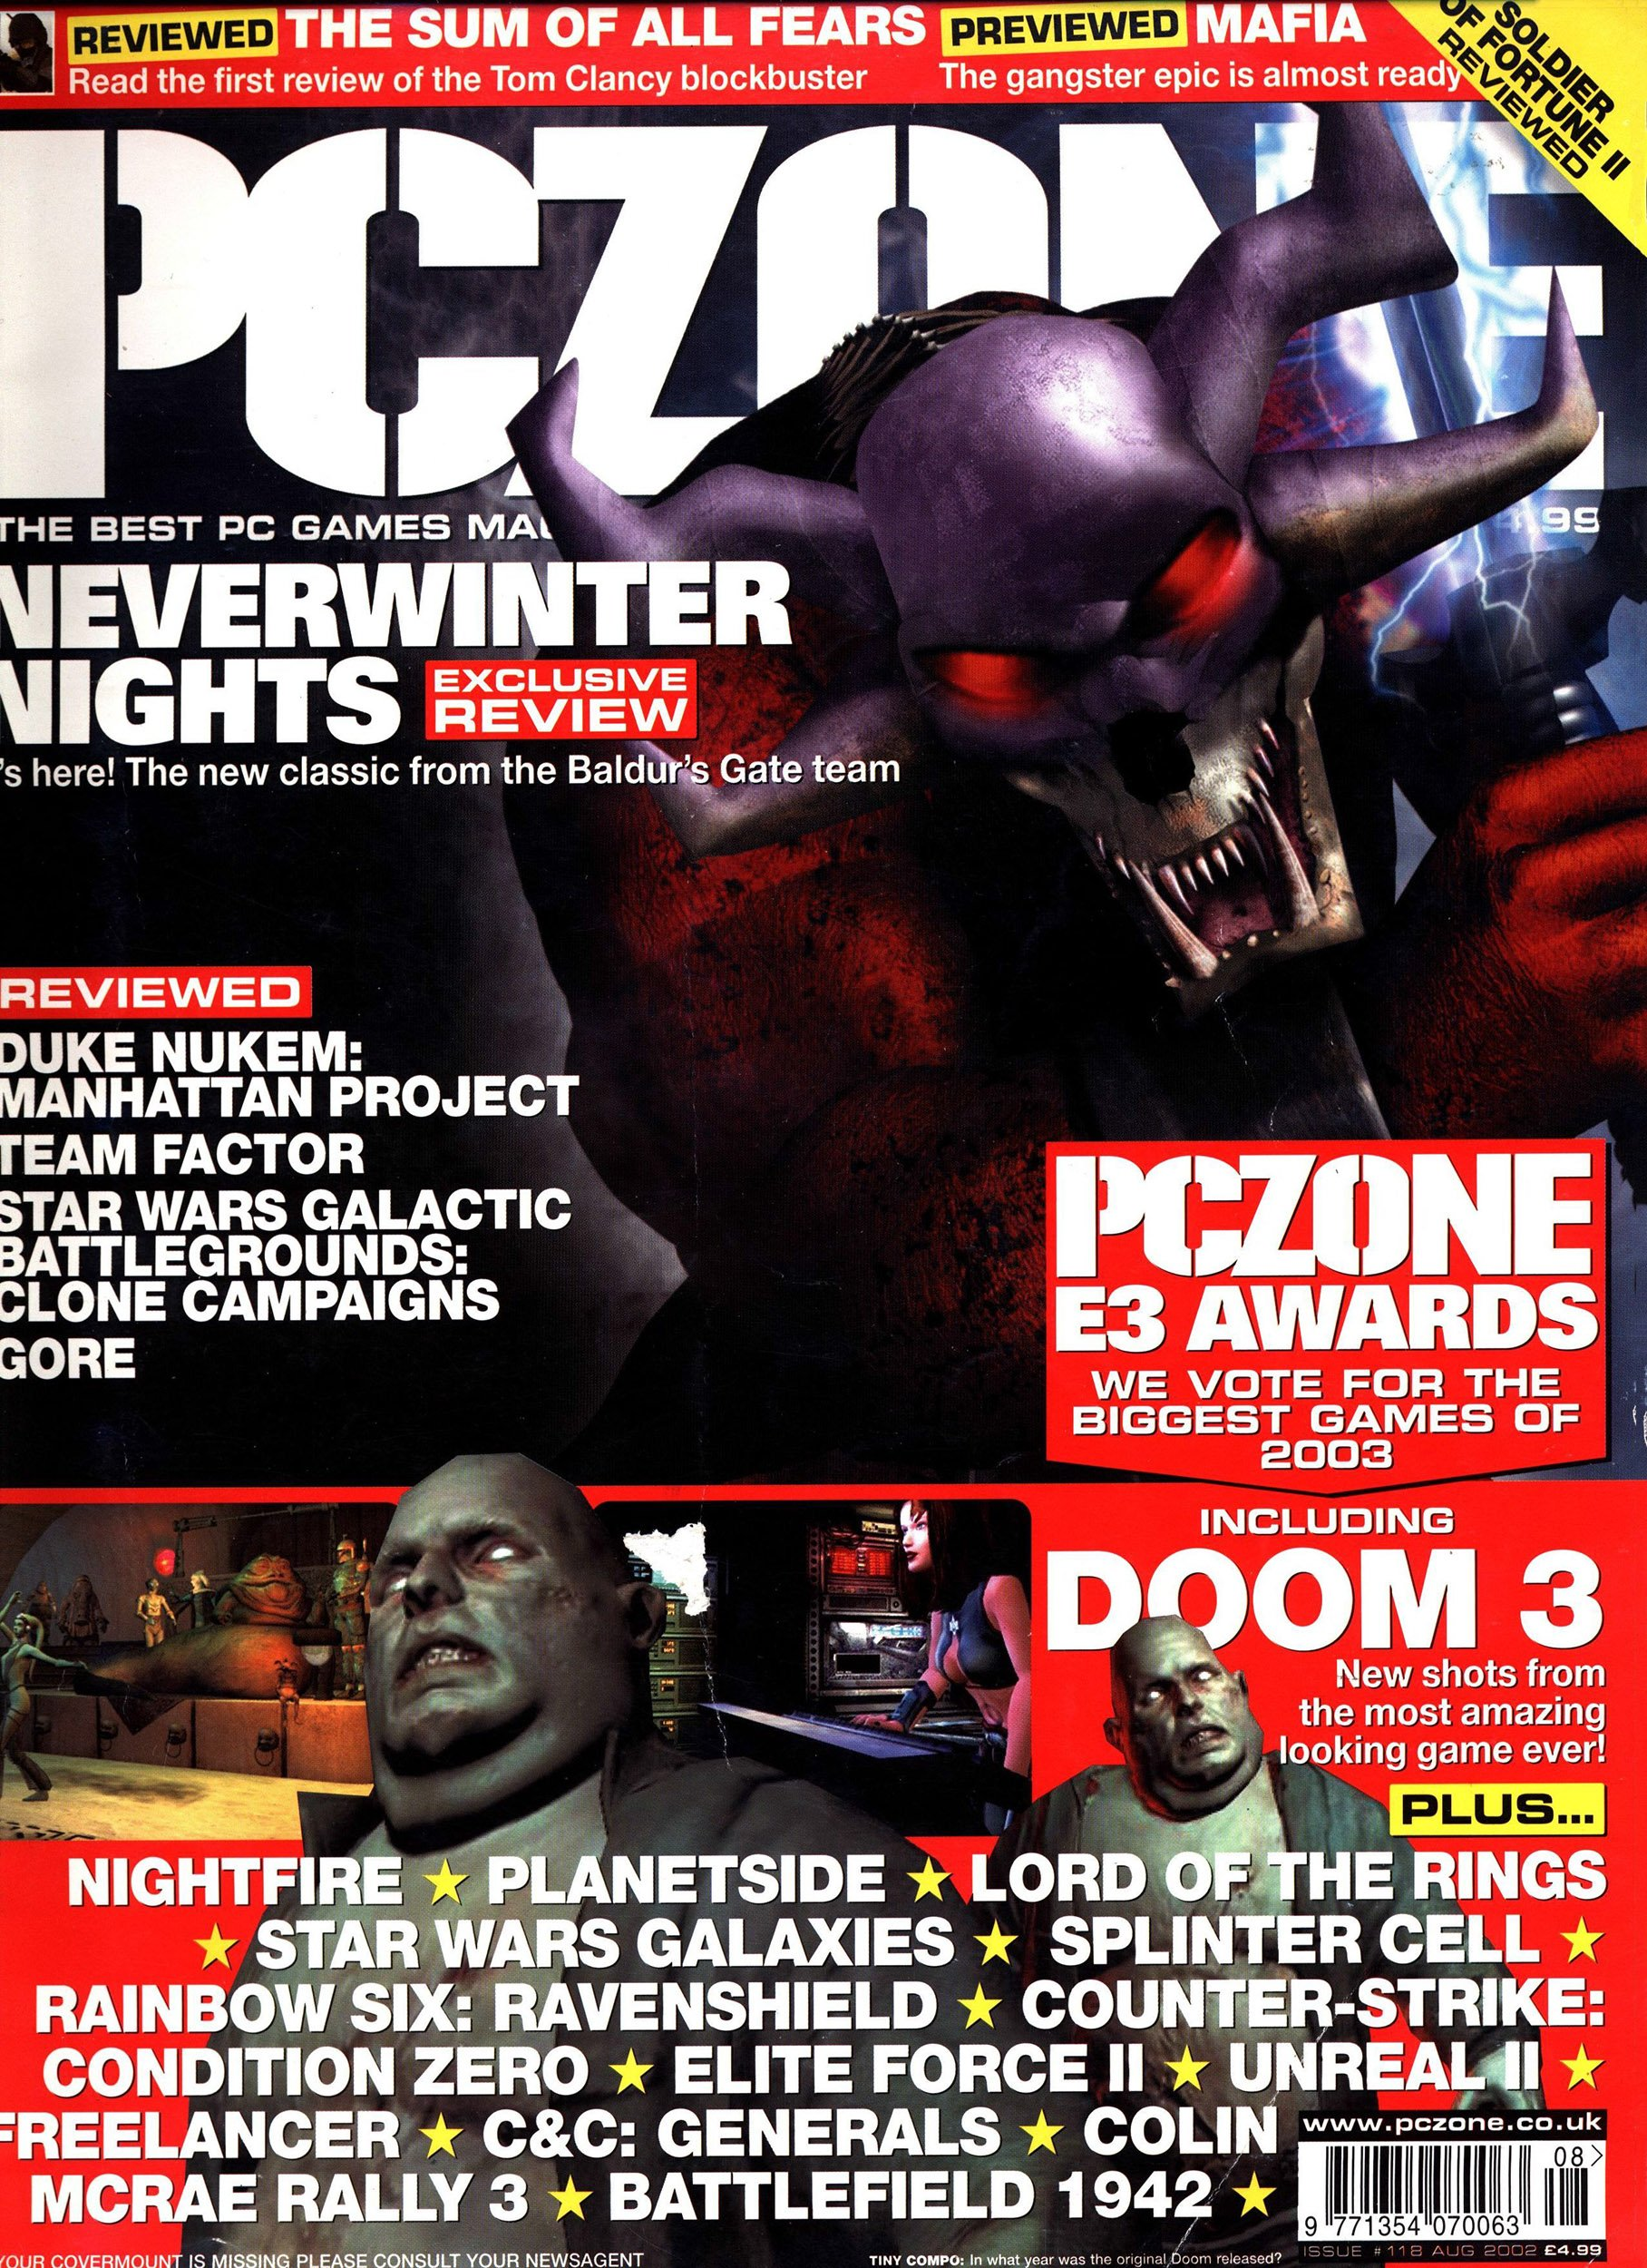 PC Zone Issue 118 (August 2002)